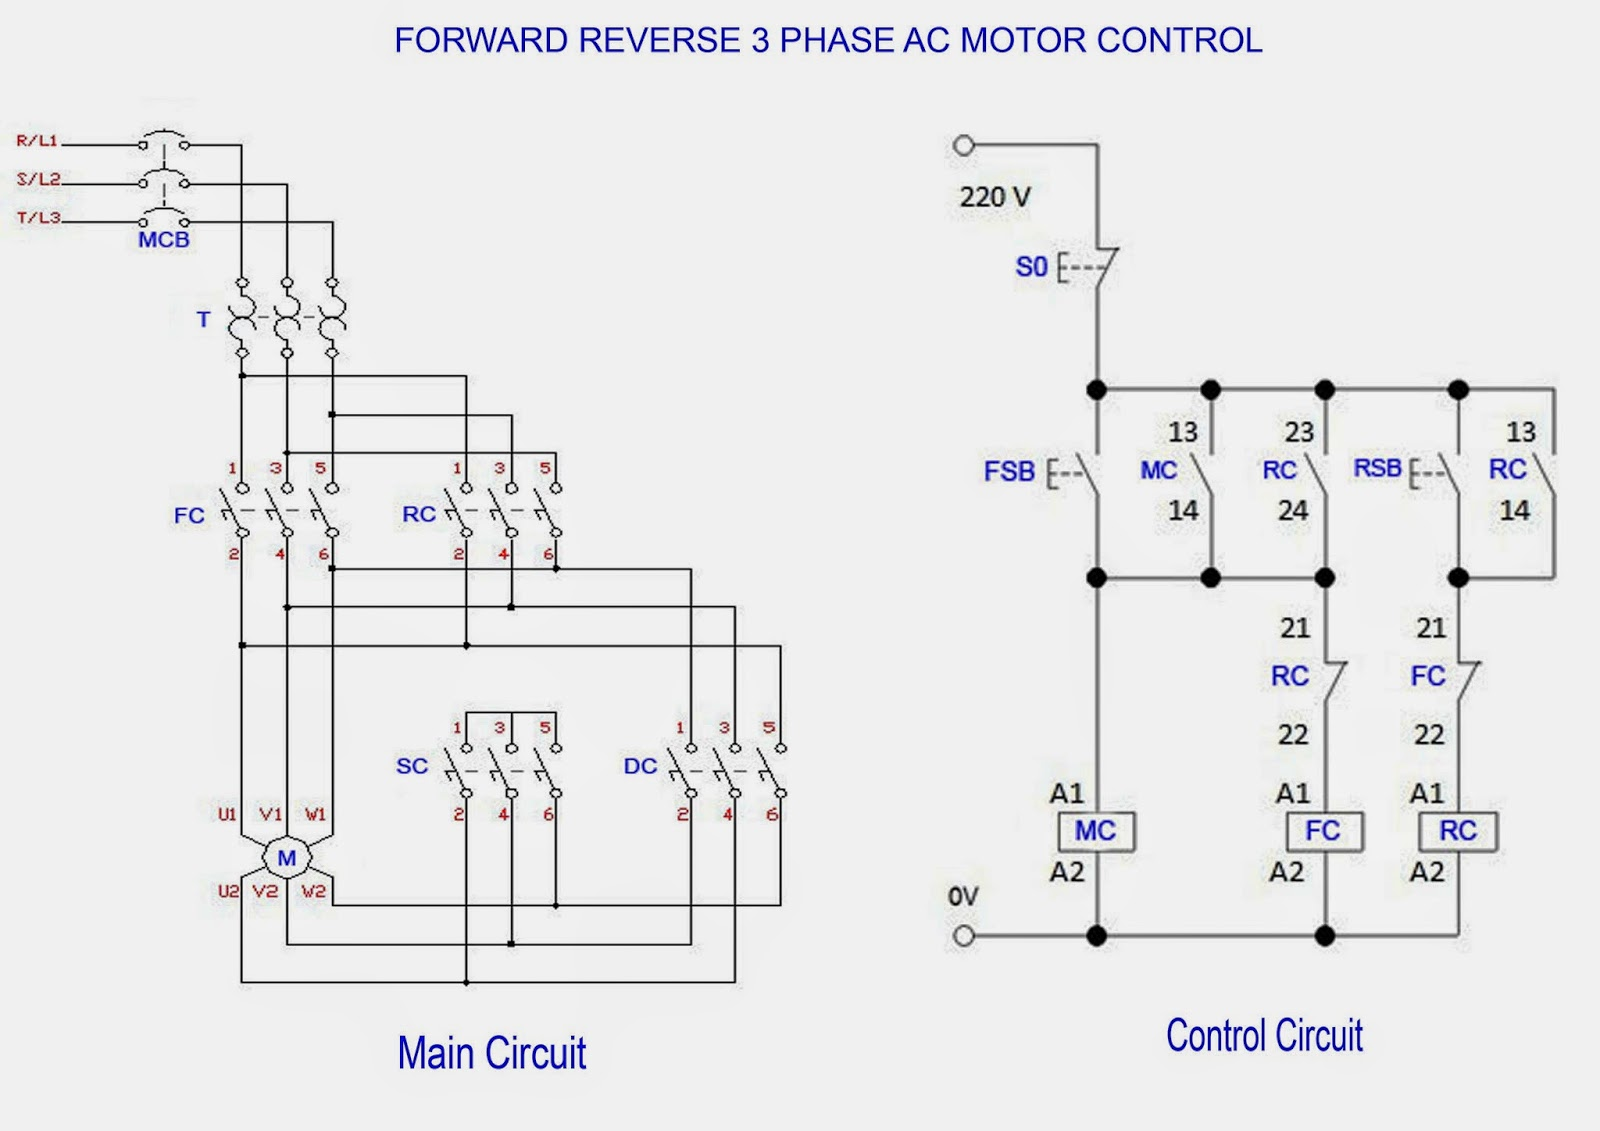 3 phase motor control wiring diagram schematic diagram 192 rgr single phase motor and components forward reverse 3 phase ac motor control star delta wiring 3 phase transformer wiring diagram forward